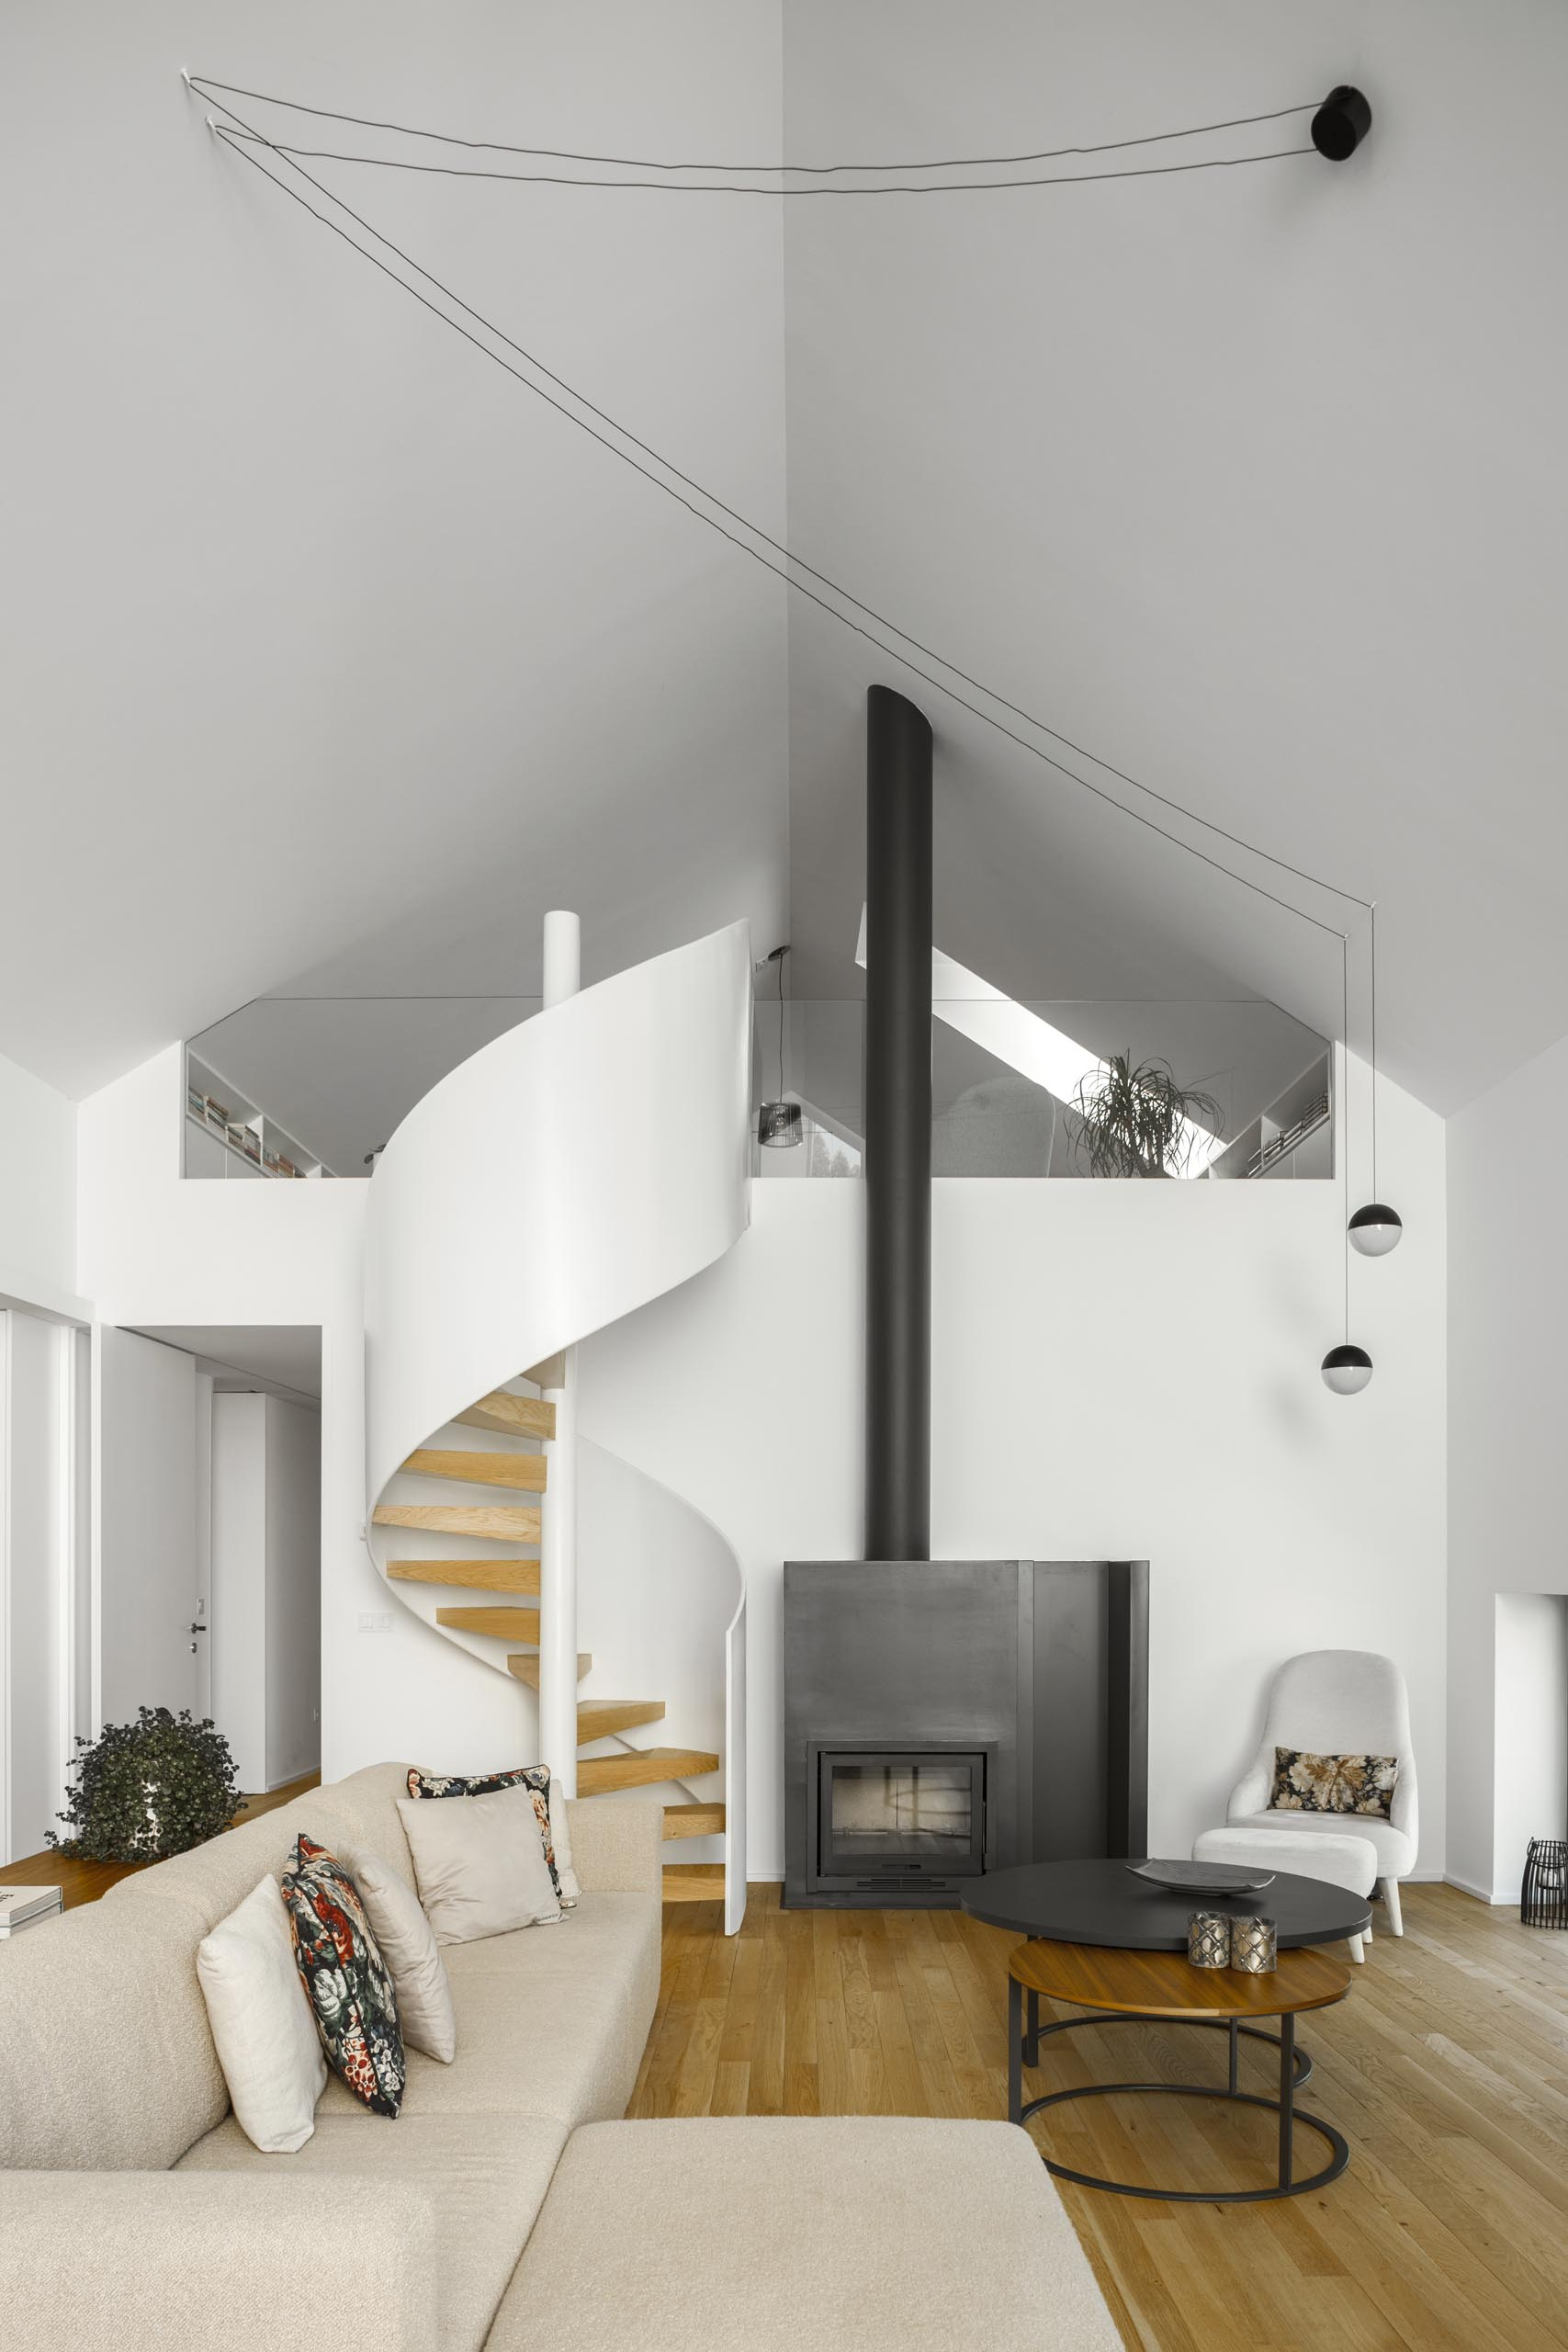 Modern white and wood spiral stairs and a fireplace with a black steel surround.